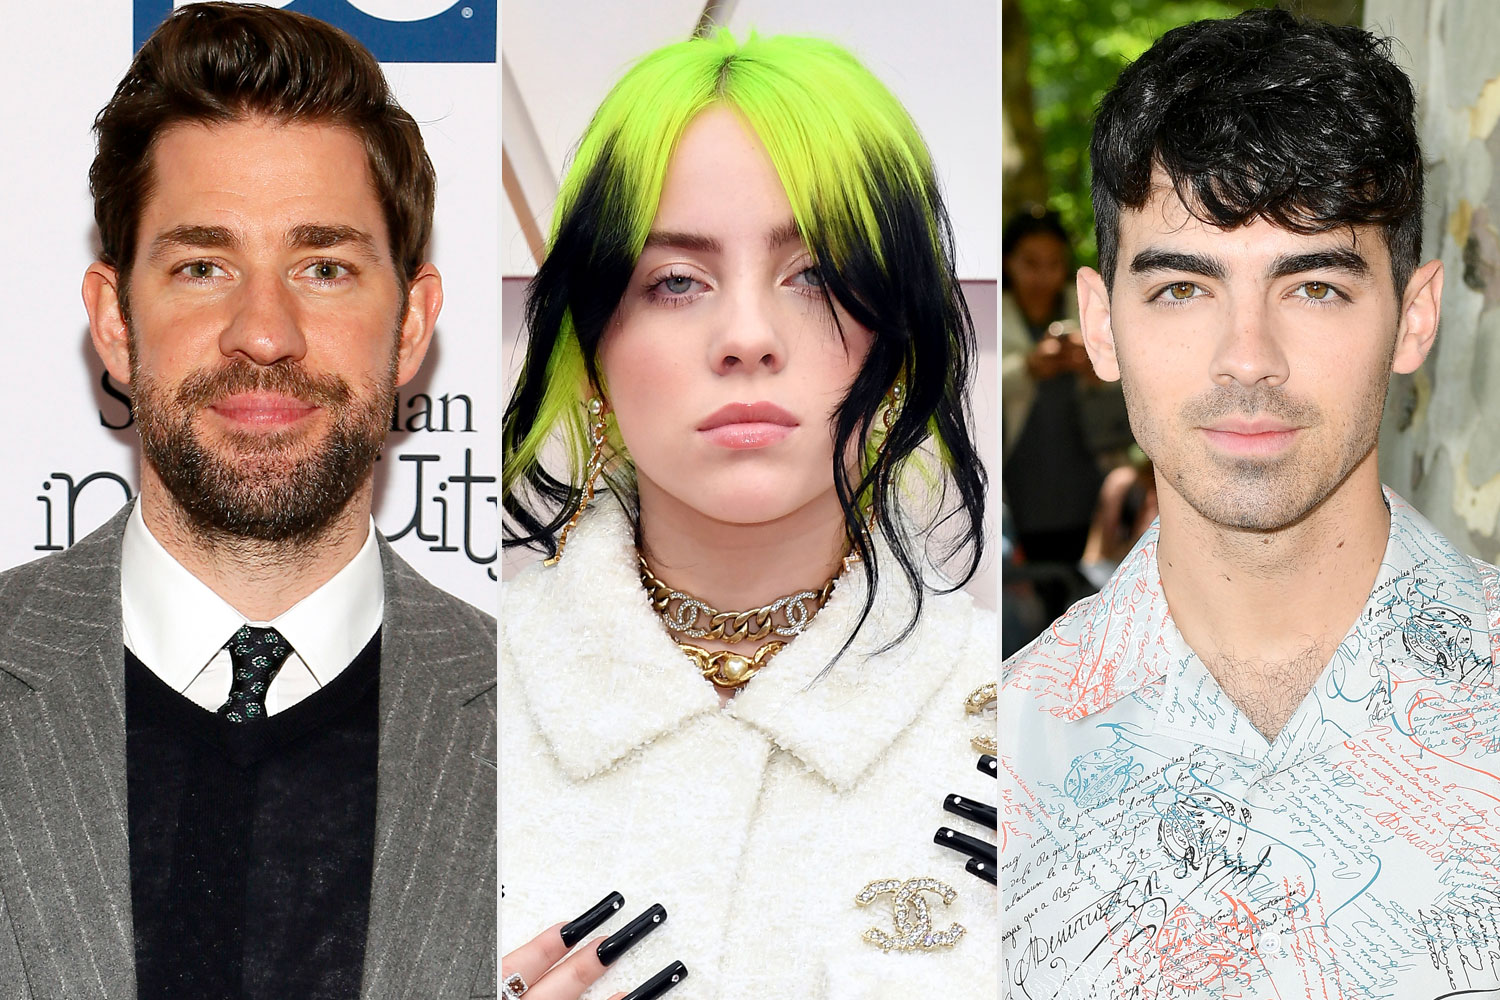 John Krasinski, Billie Eillish, Joe Jonas